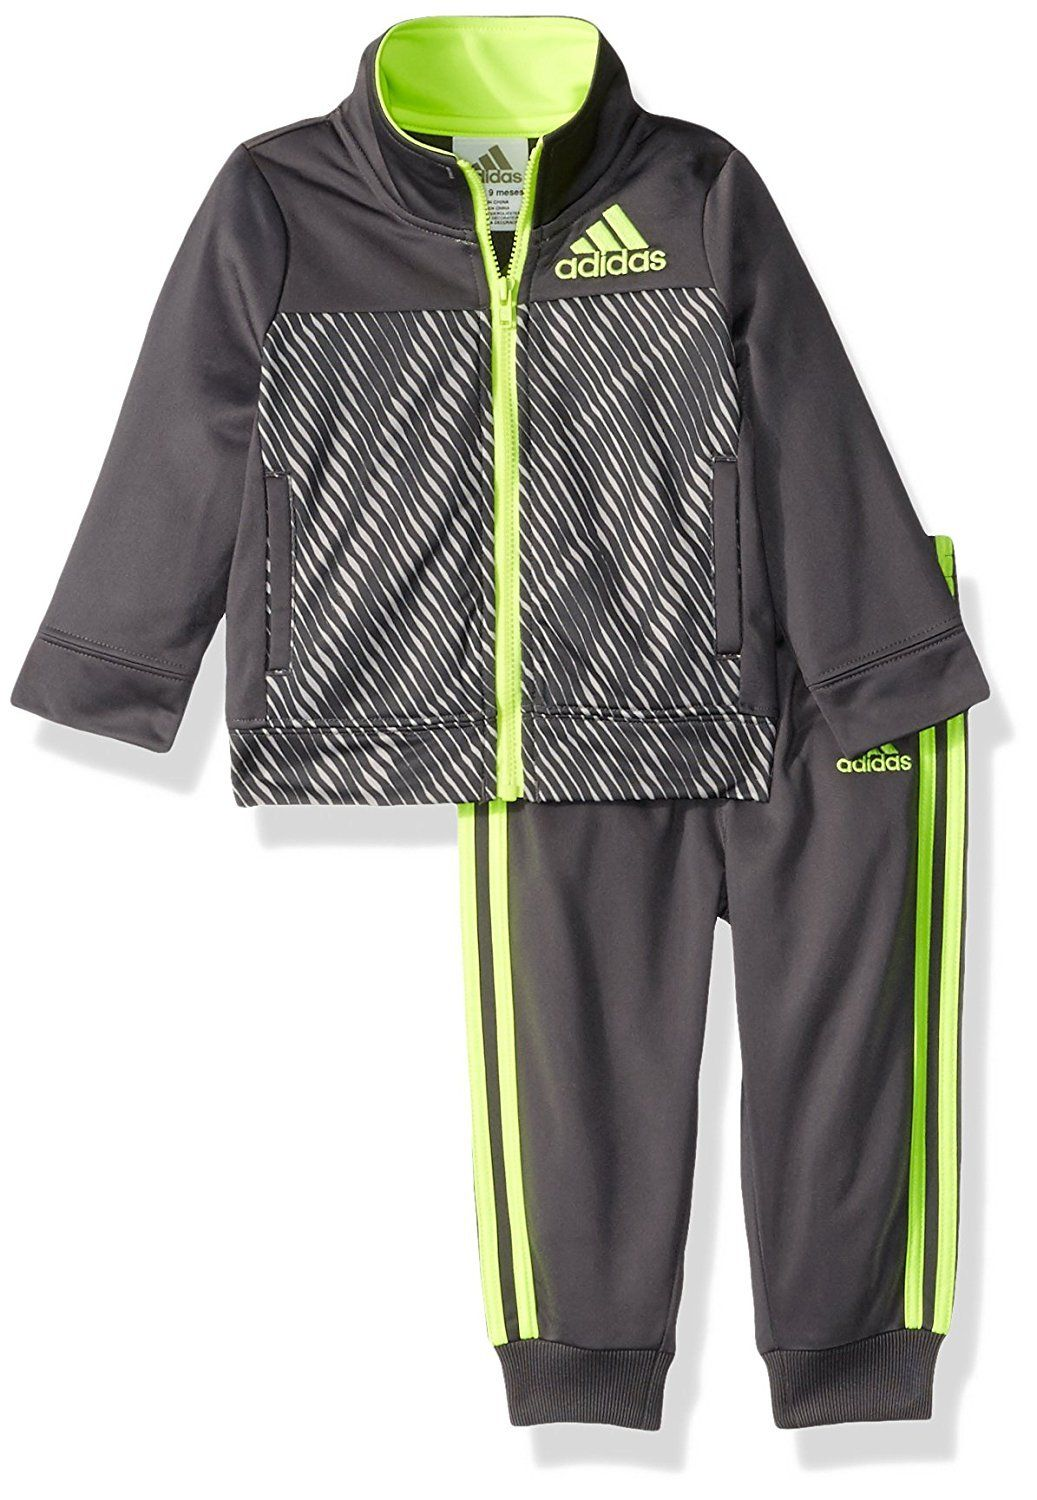 And Products Tricot Pant Adidas Up Zip Baby Boys' Set Jacket yzTfYwpCq